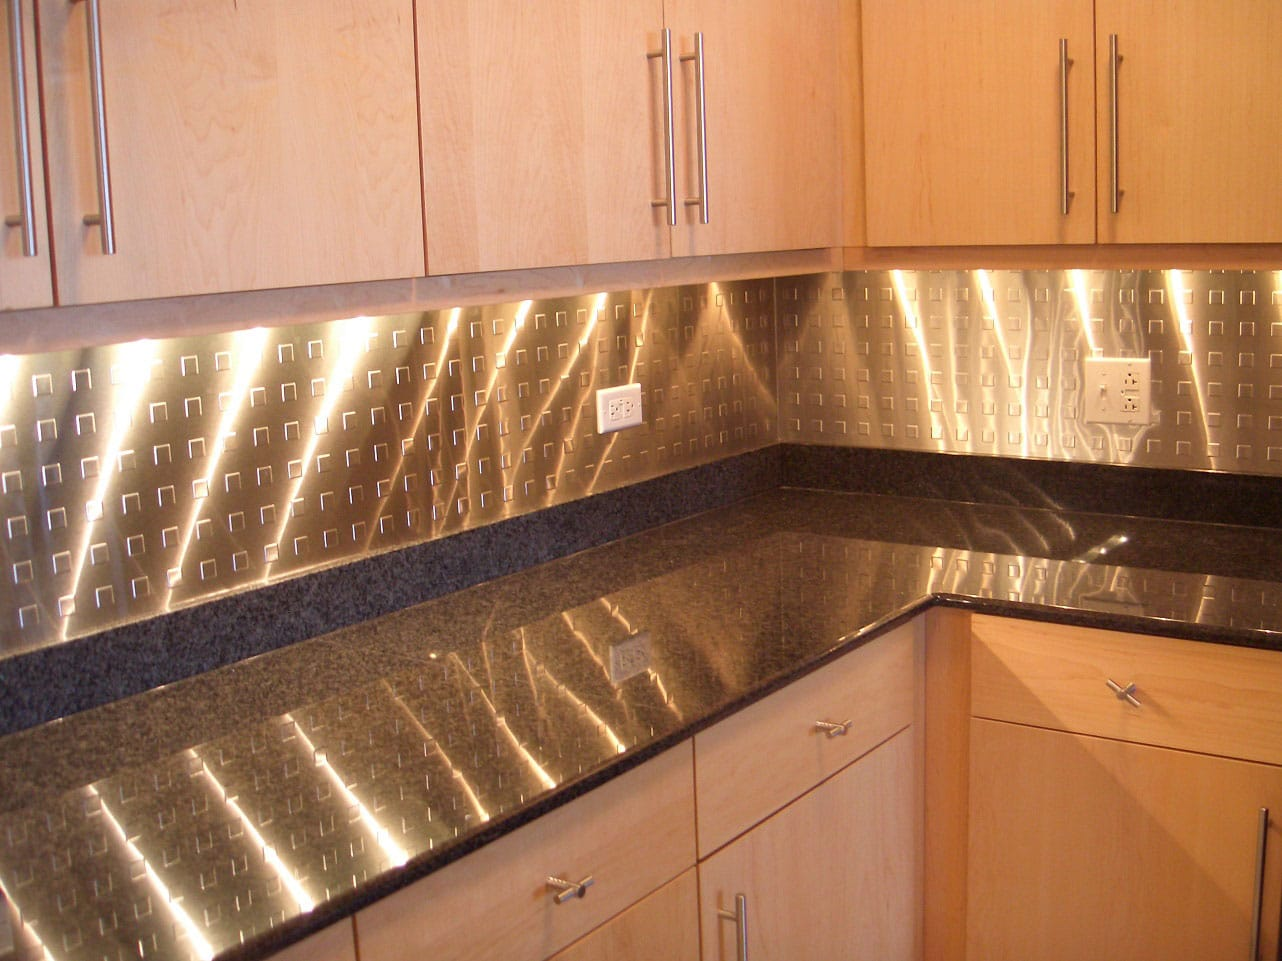 Backsplash Materials Why They Matter Direct Home Remodeling Inc - Stainless-steel-backsplash-creative